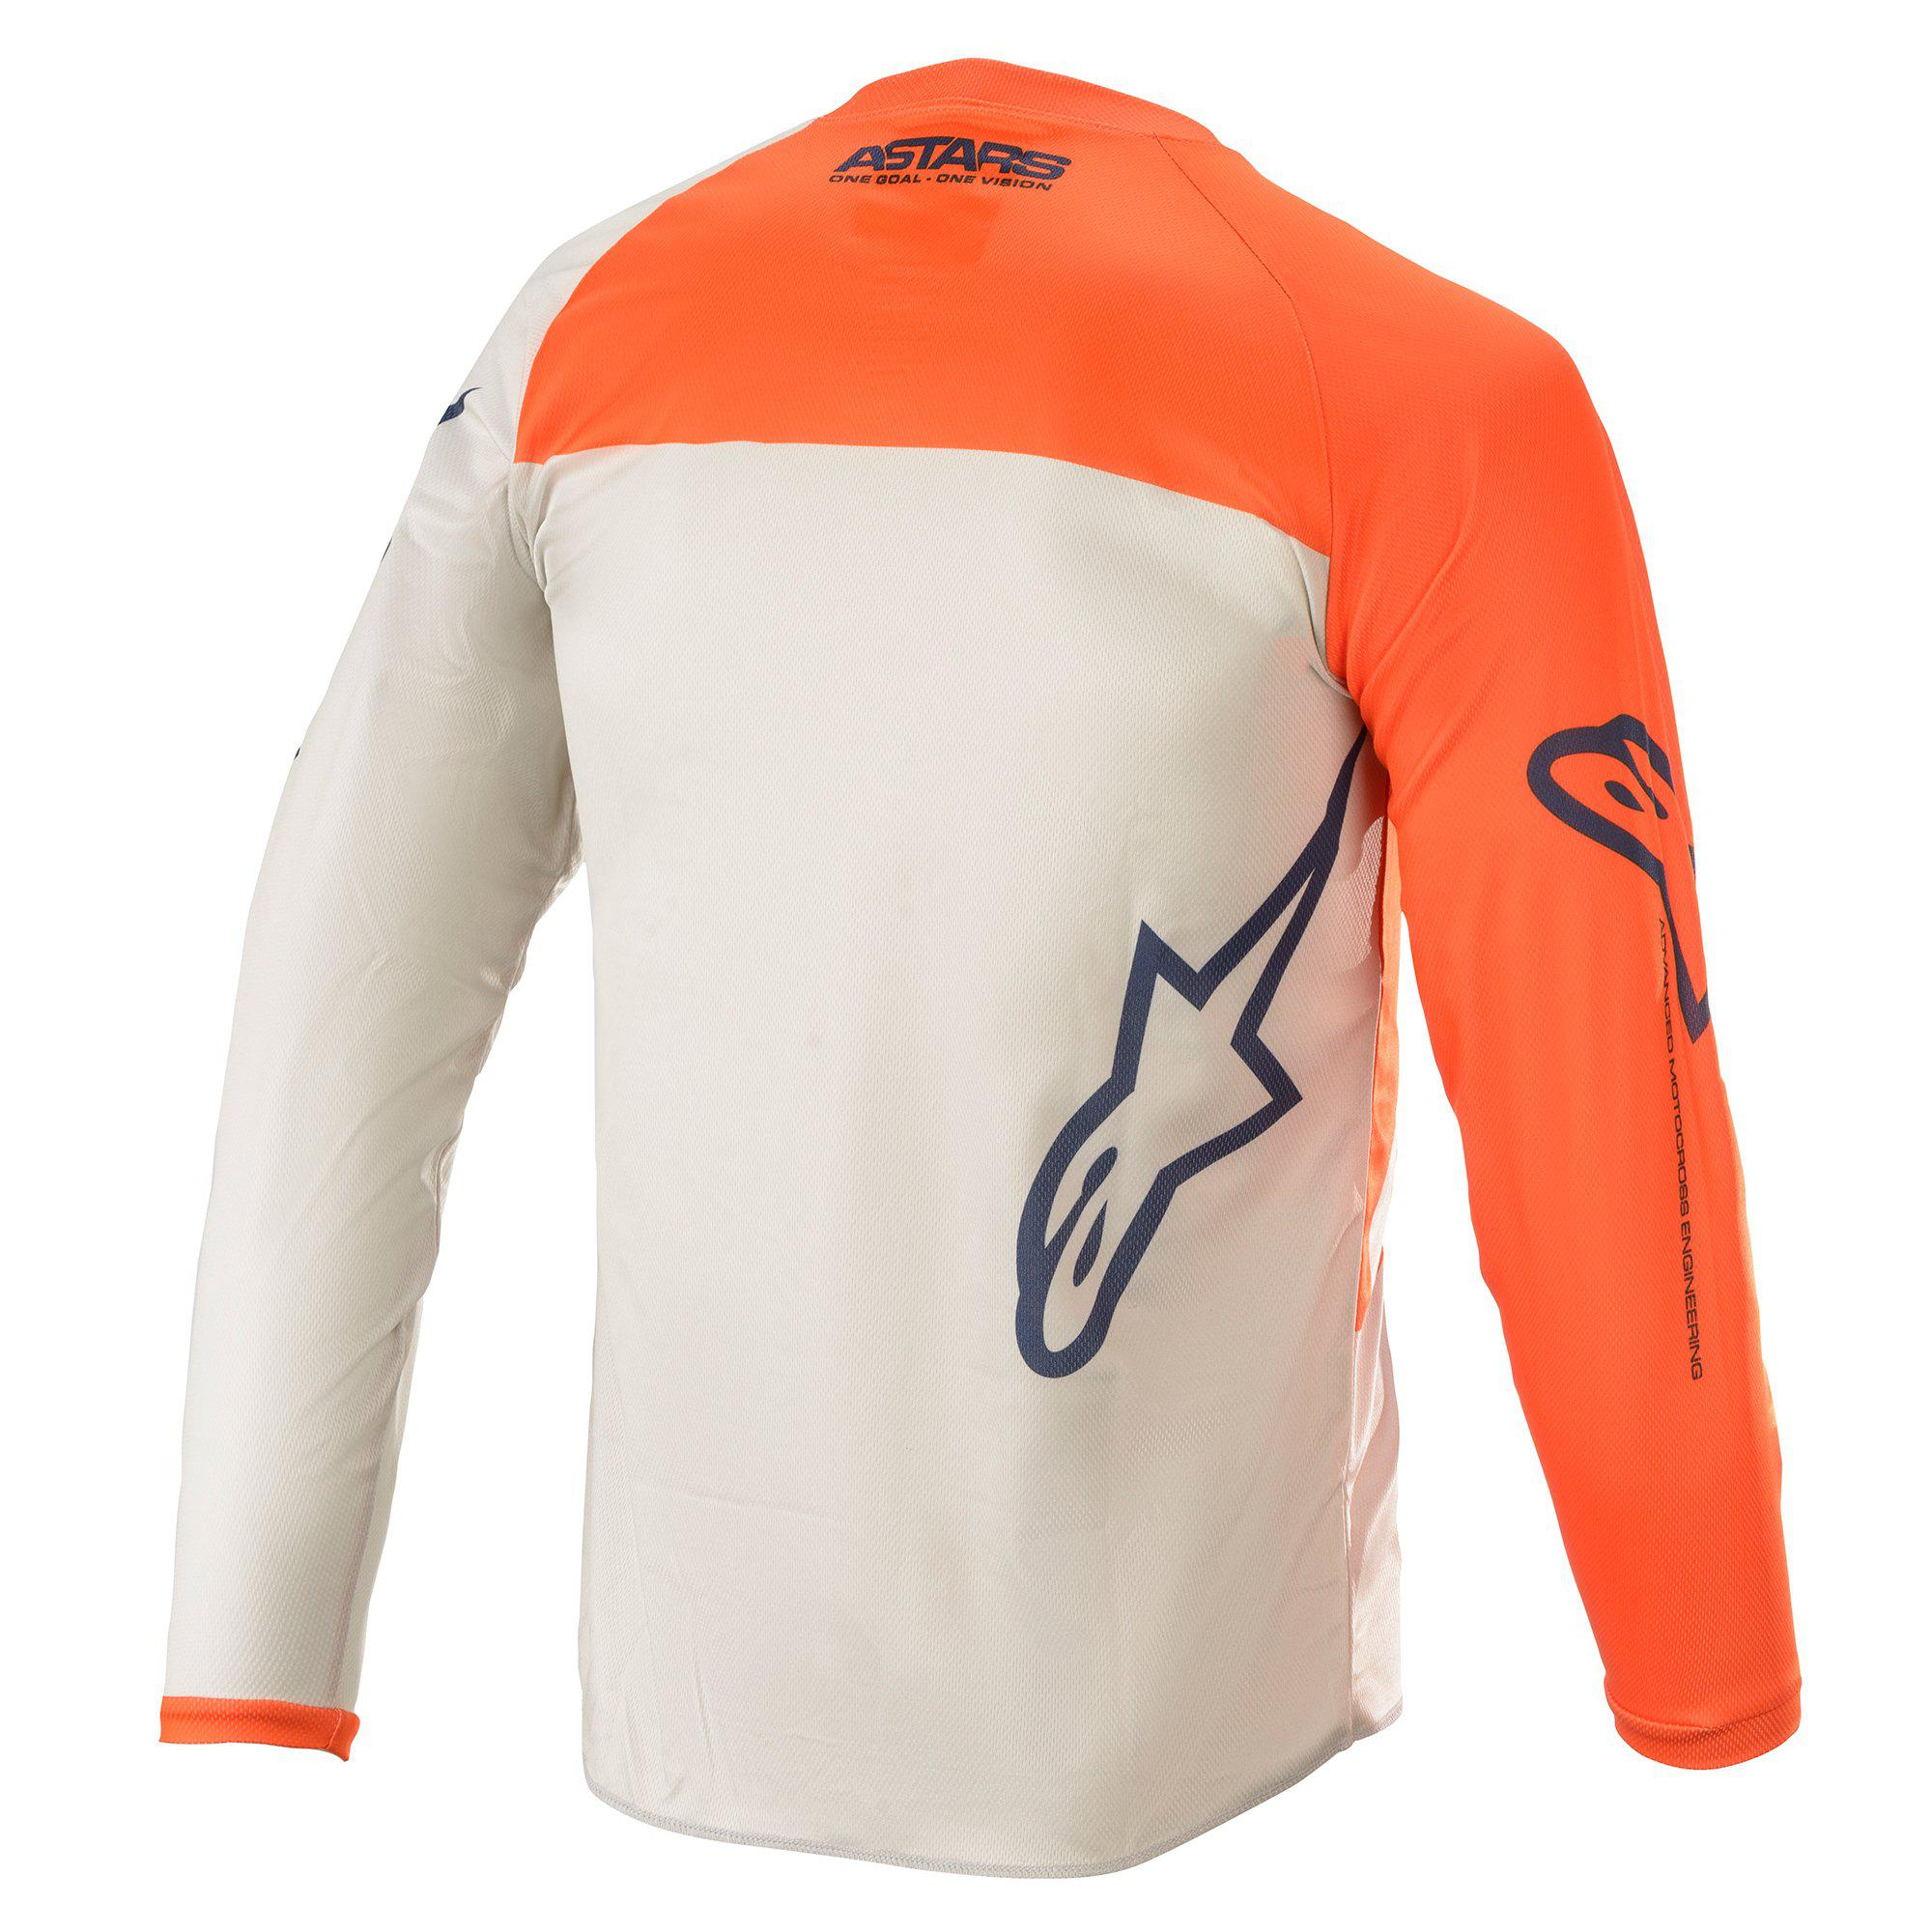 2021 Youth Racer Braap Jersey